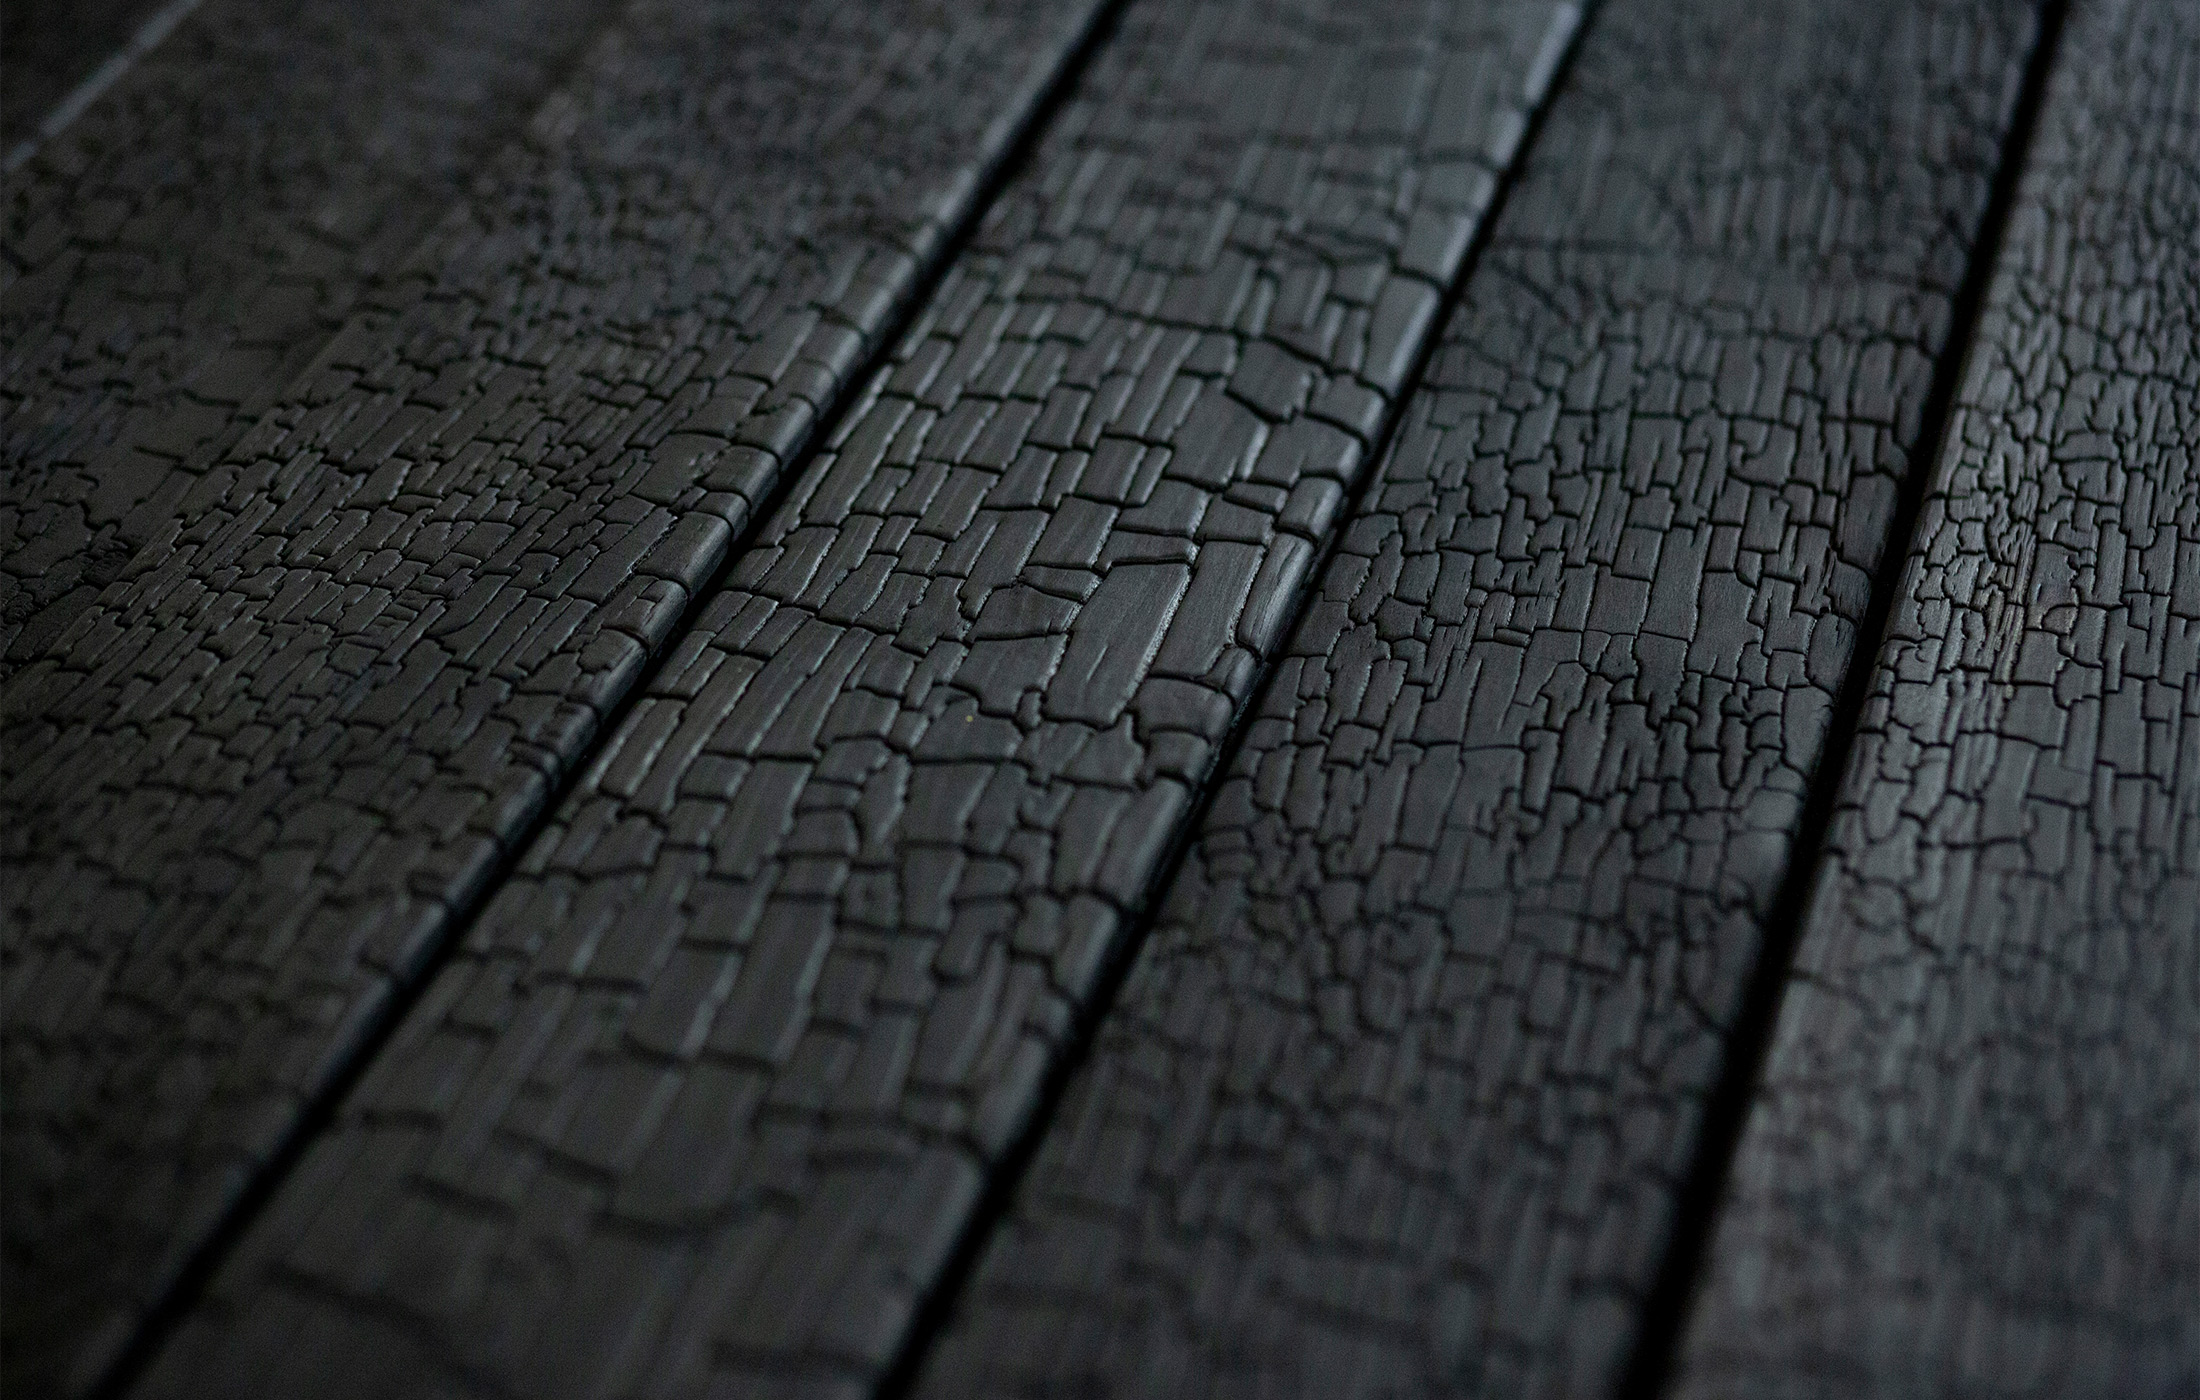 Black is Back! Charred timber is all the rage amongst architects and designers